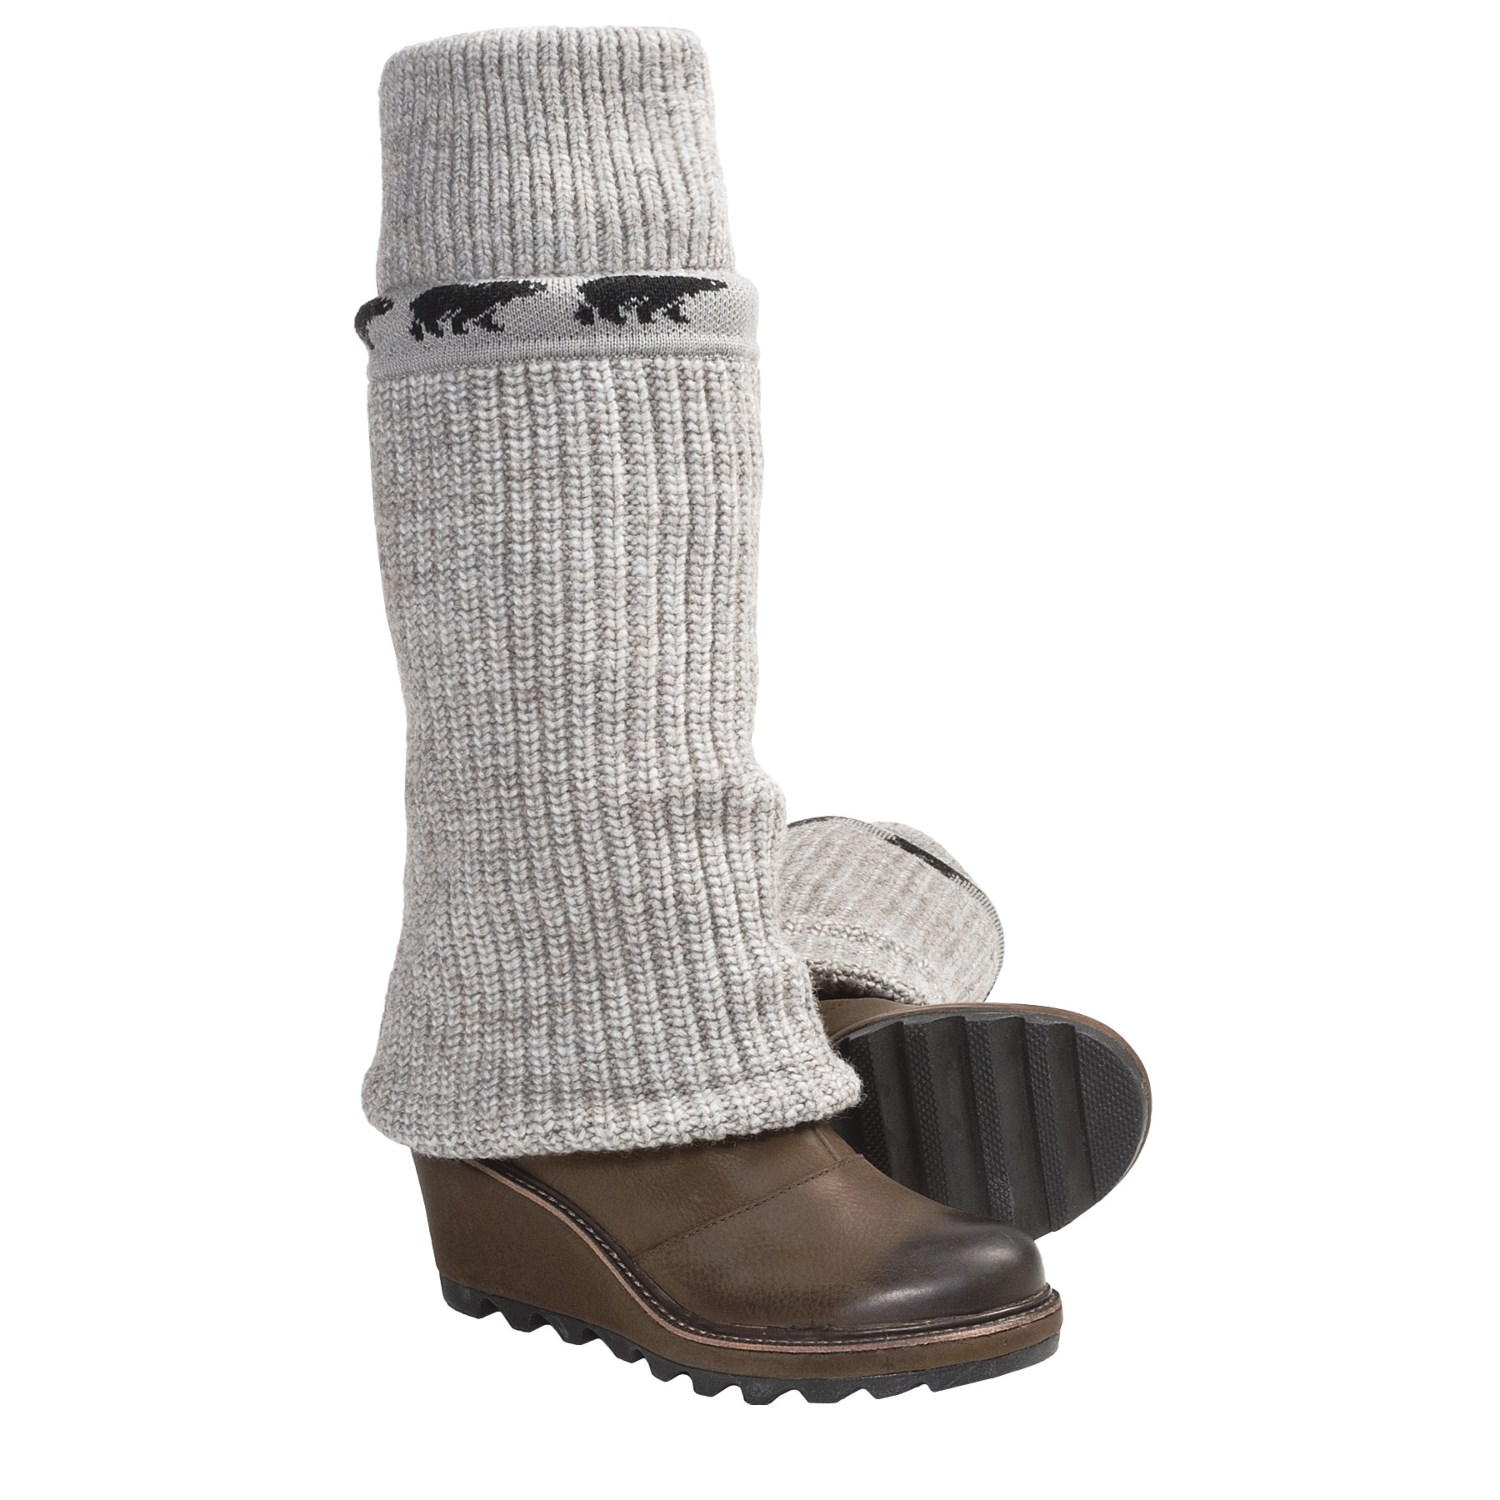 Cable Weather Boot : Sorel crazy cable wedge rib knit sweater boots for women